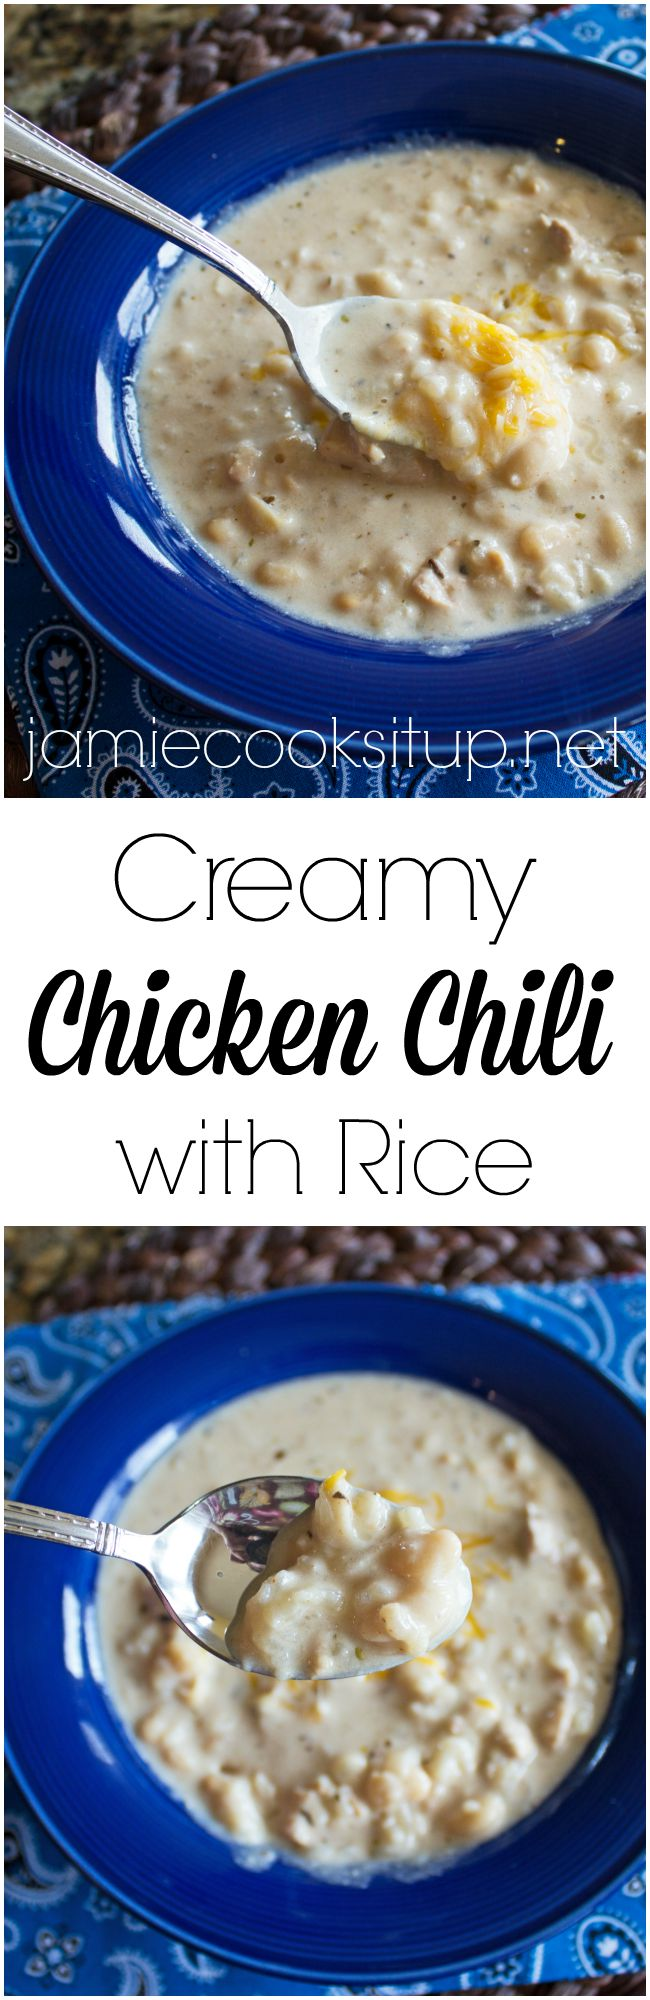 Creamy Chicken Chili with Rice from Jamie Cooks It Up!